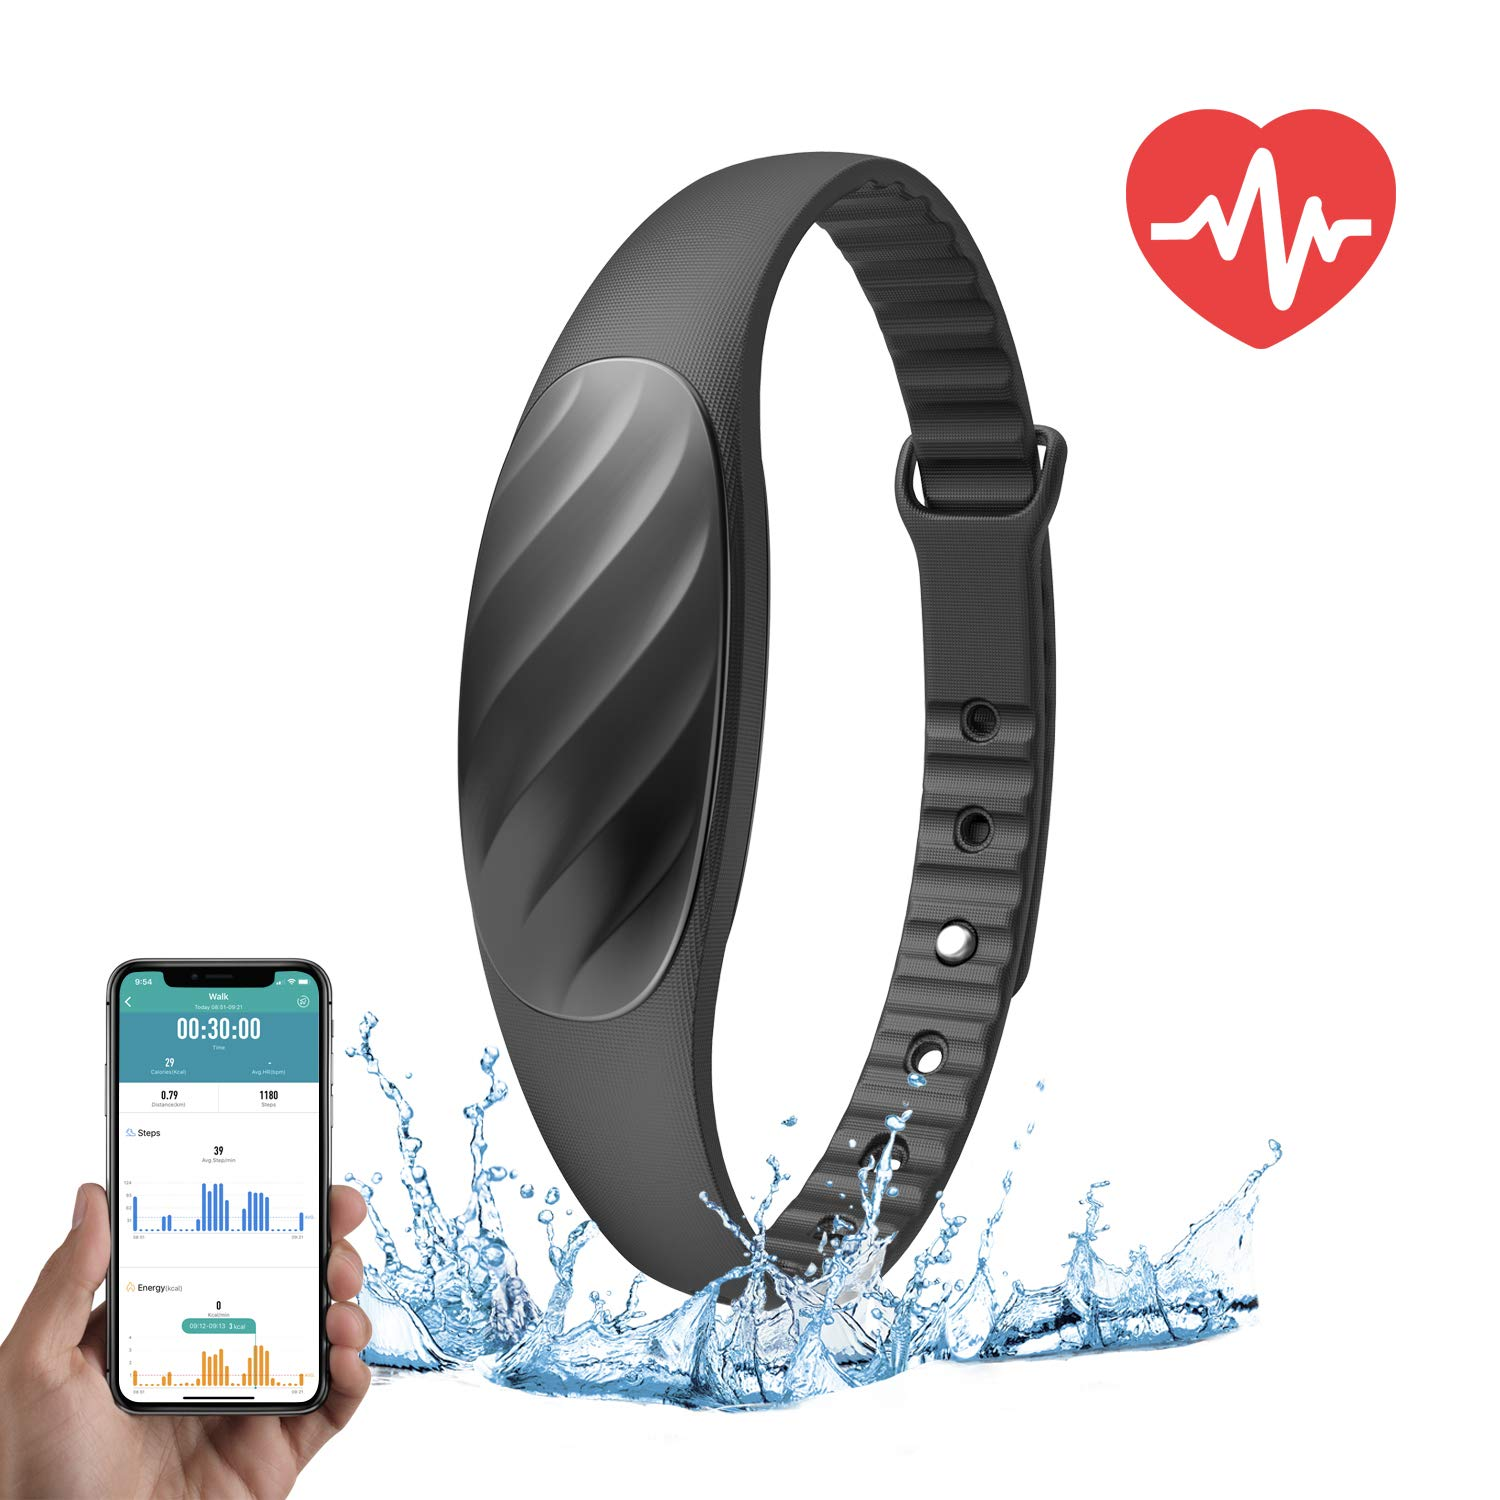 Amazon.com: NexTrend Slim Fitness Band, Tracker Watch with ...